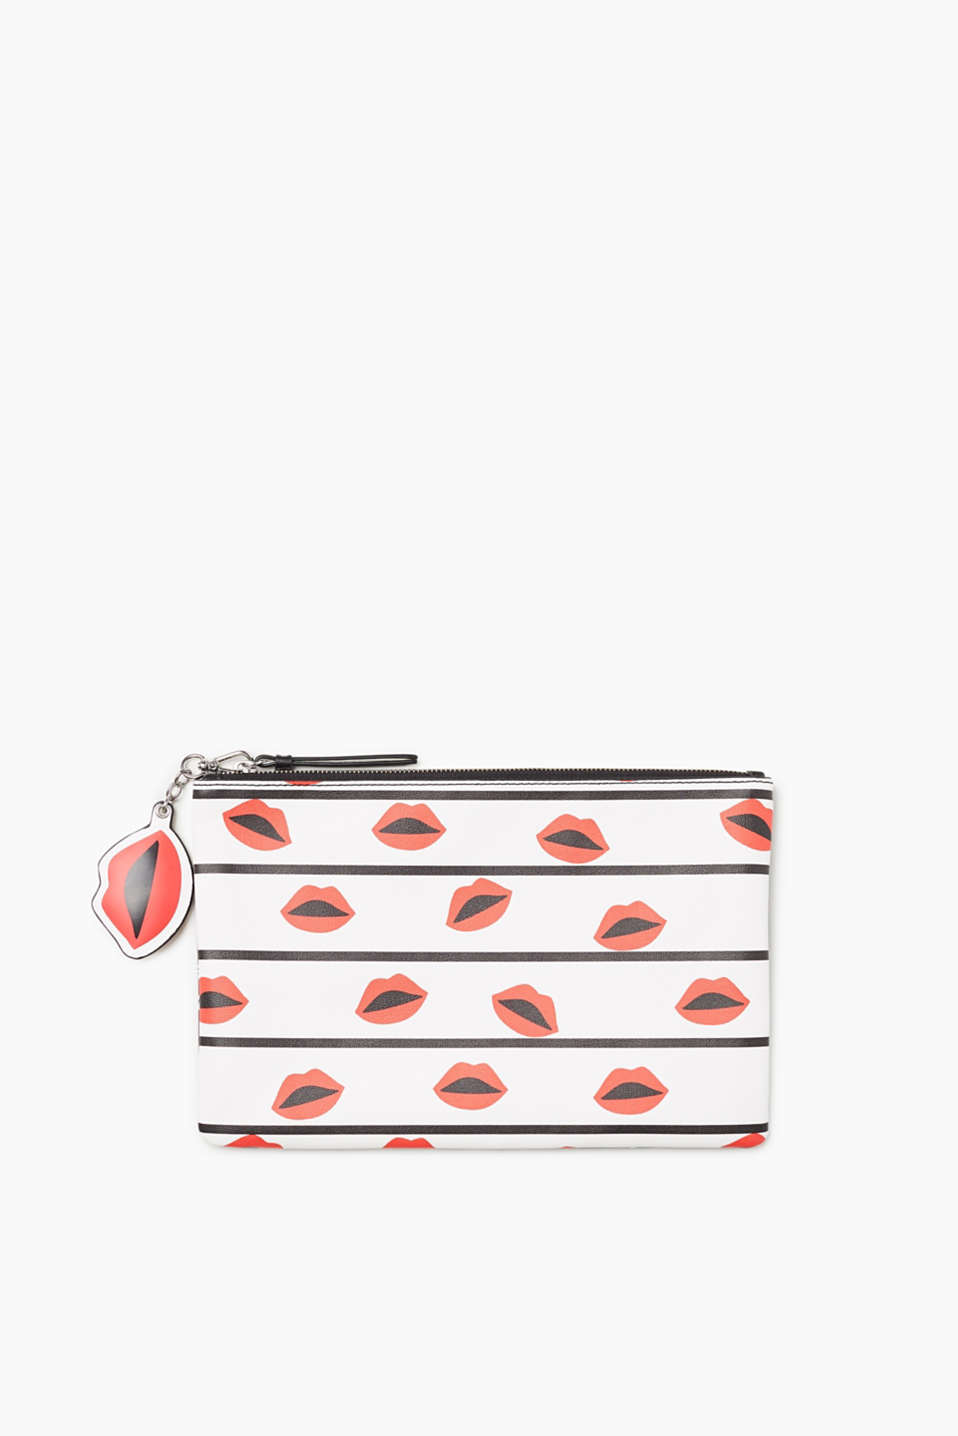 edc - Clutch met rits en coole prints